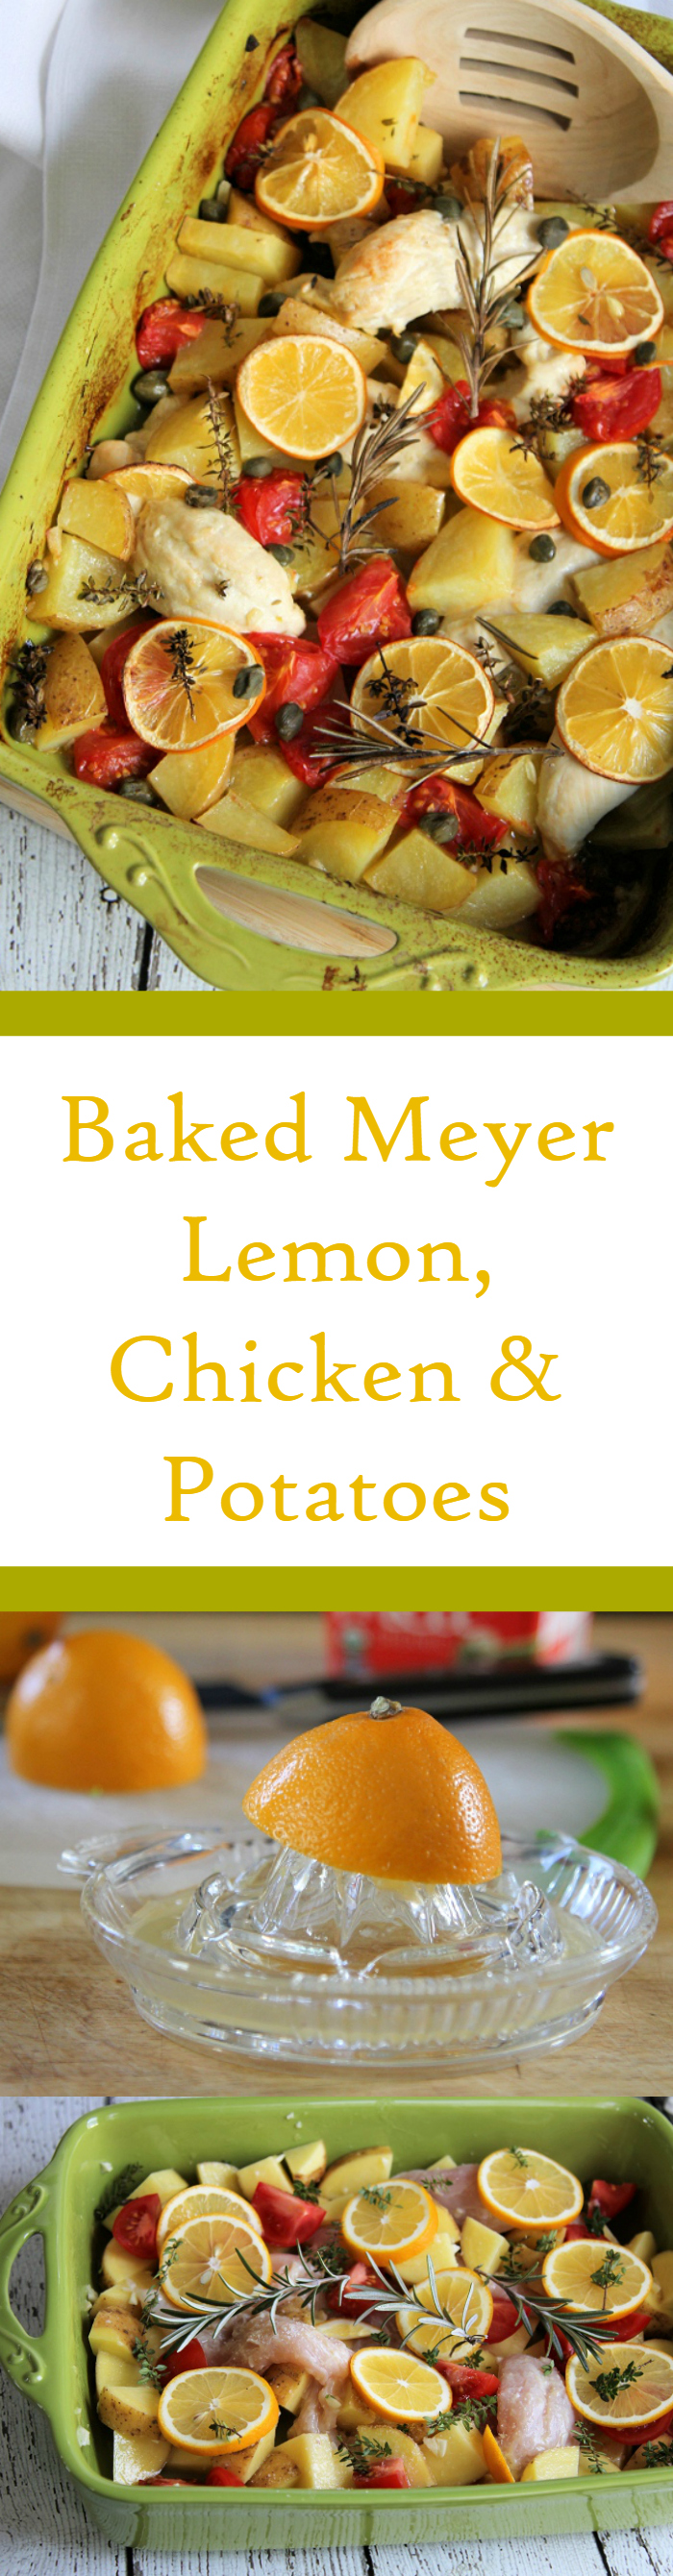 Baked Meyer Lemon Chicken & Potatoes. An easy meal bursting with flavor. #chicken #meyerlemon #casserole